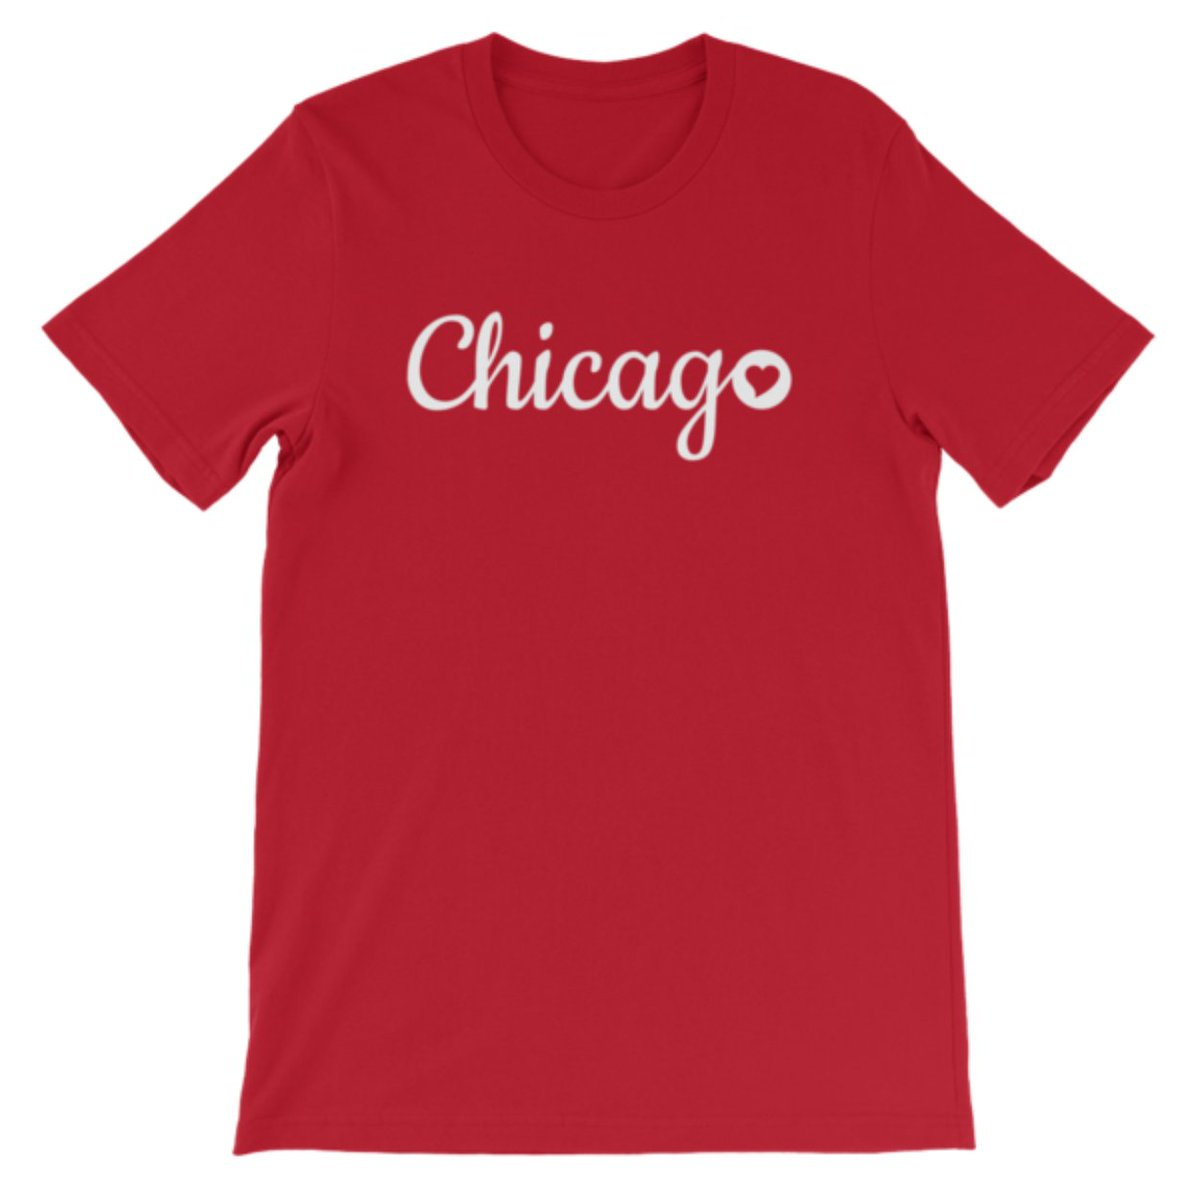 Hey #Chicago, get your #valentines a fun gift this year! . https://t.co/isbKsbys2H https://t.co/k4tuKzvTw2 . #allographictees #ValentinesDay #ValentinesDay2019 #vday #VDAY19 #ValentinesDayGift #valentinesdaygifts #valentine #valentinesgiftideas #valentinesgifts #chitown #love https://t.co/KItAGSbgdi